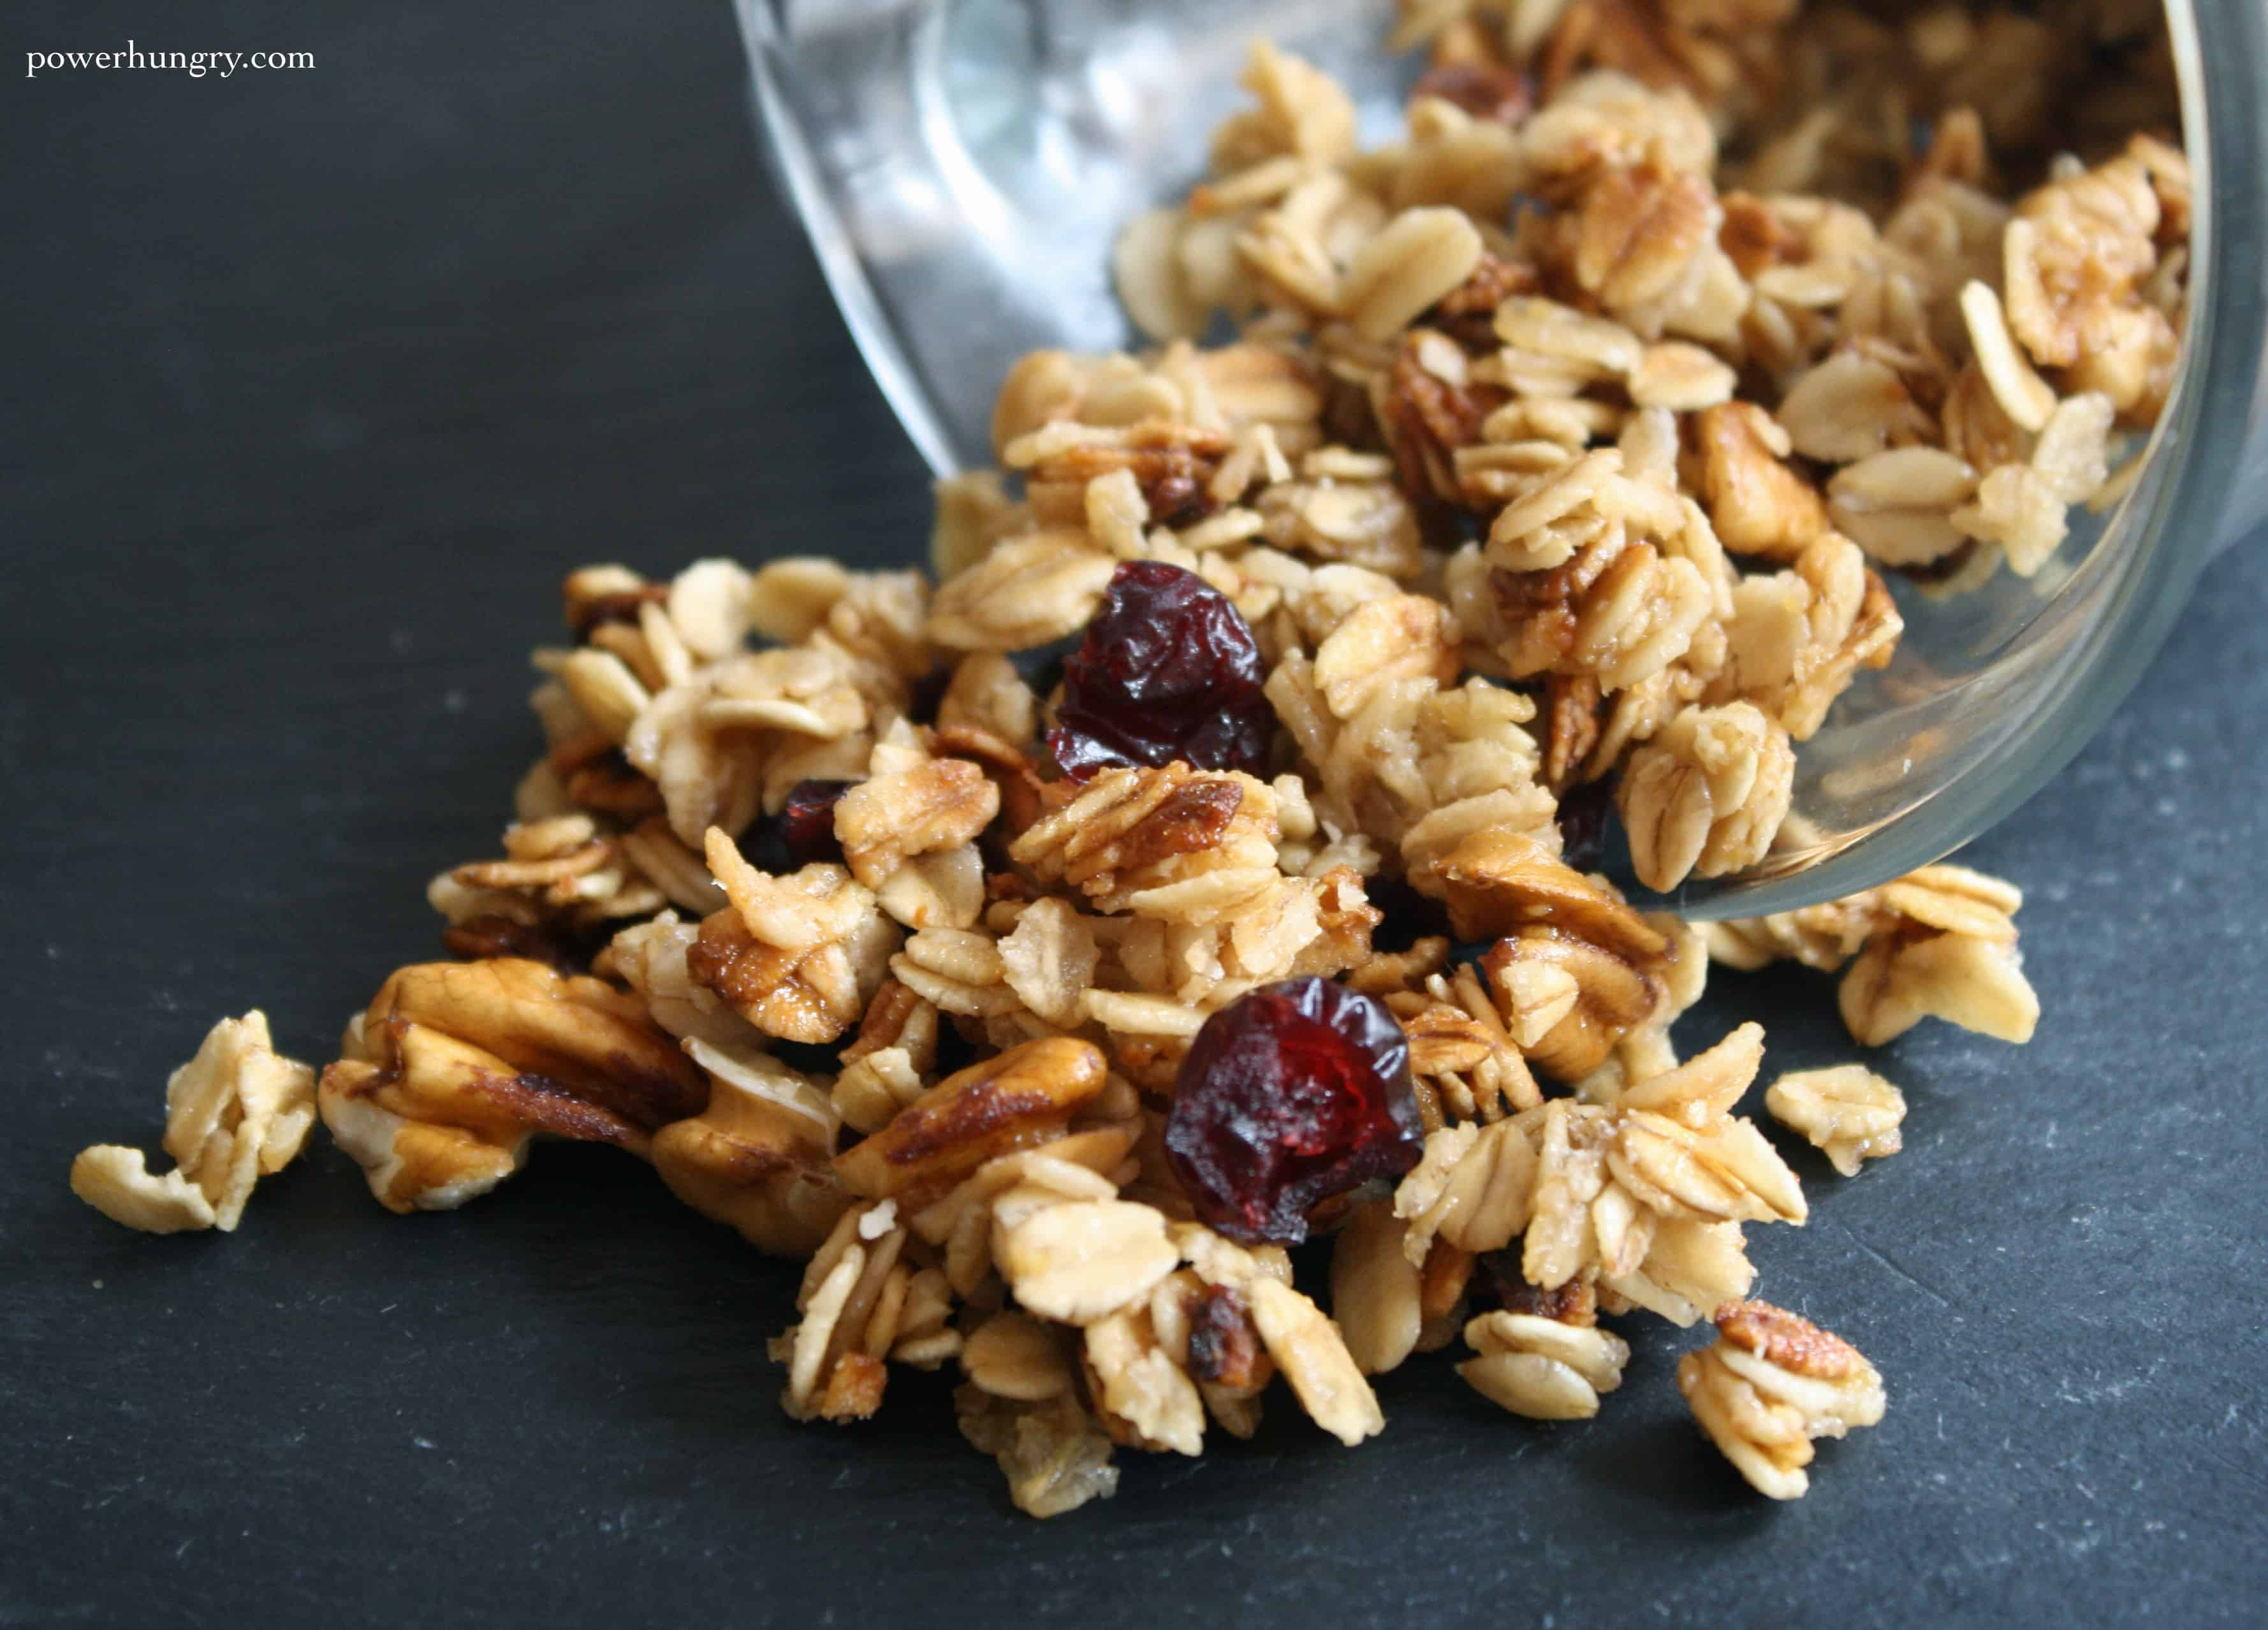 Shamelessly easy 5 minute 5 ingredient microwave mug granola you could hang around the kitchen for 45 minutes to an hour hand crafting a jumbo batch of artisanal granola follow it up with 20 minutes of scrubbing ccuart Image collections